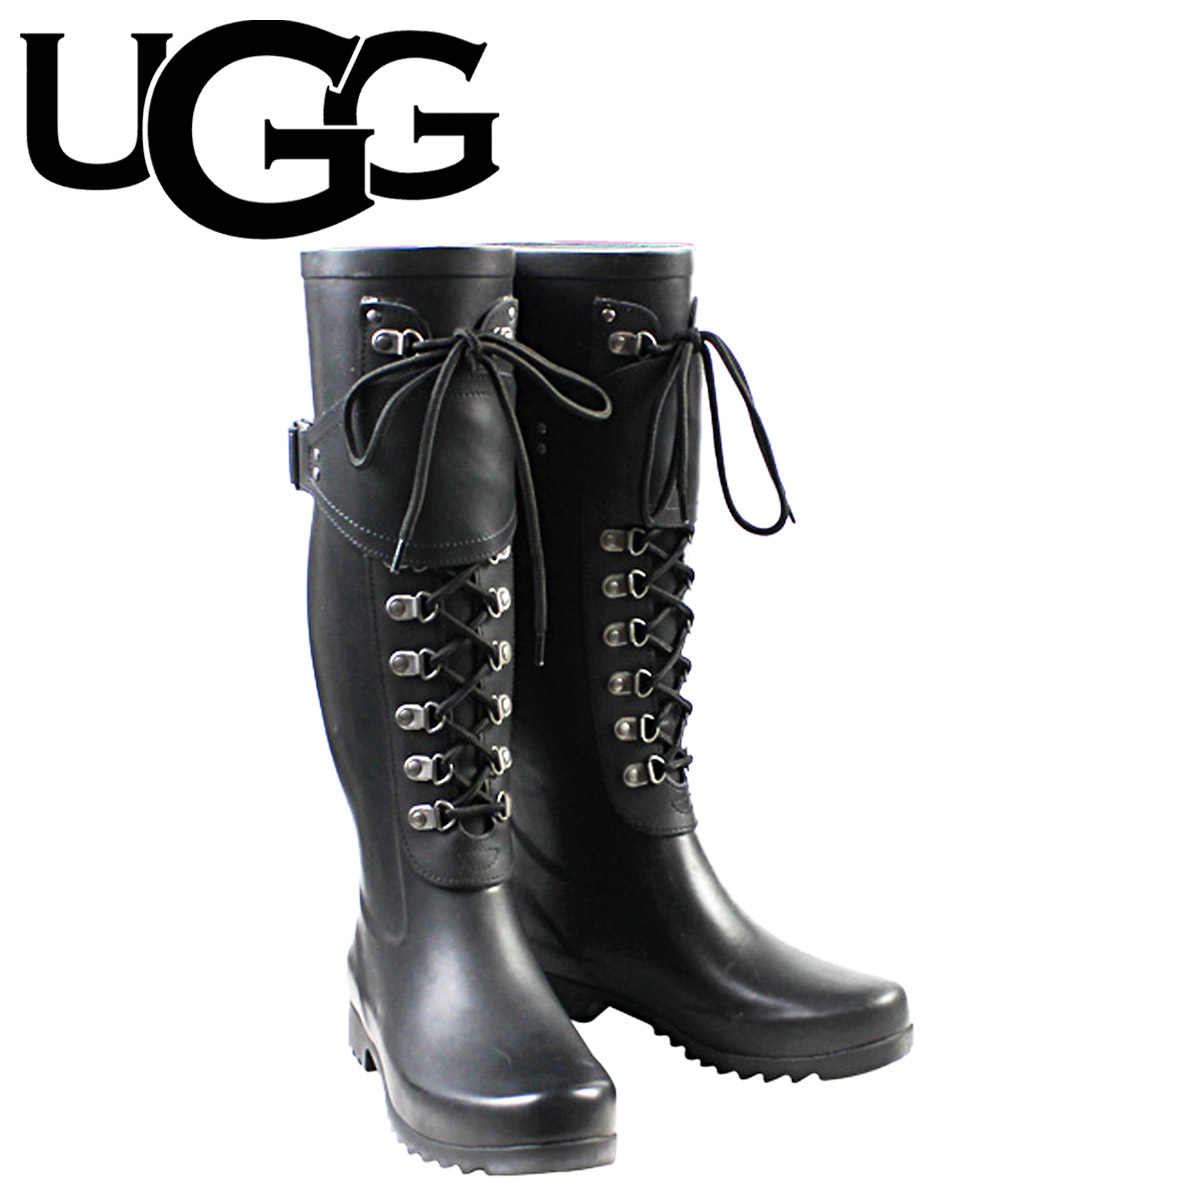 8599bc1e487 Madeleine rain boots women's UGG UGG [Black] MADELYNN WOMENS ladies rubber  2014 SPRING new 3456 [5 / 10 new in stock] [regular]